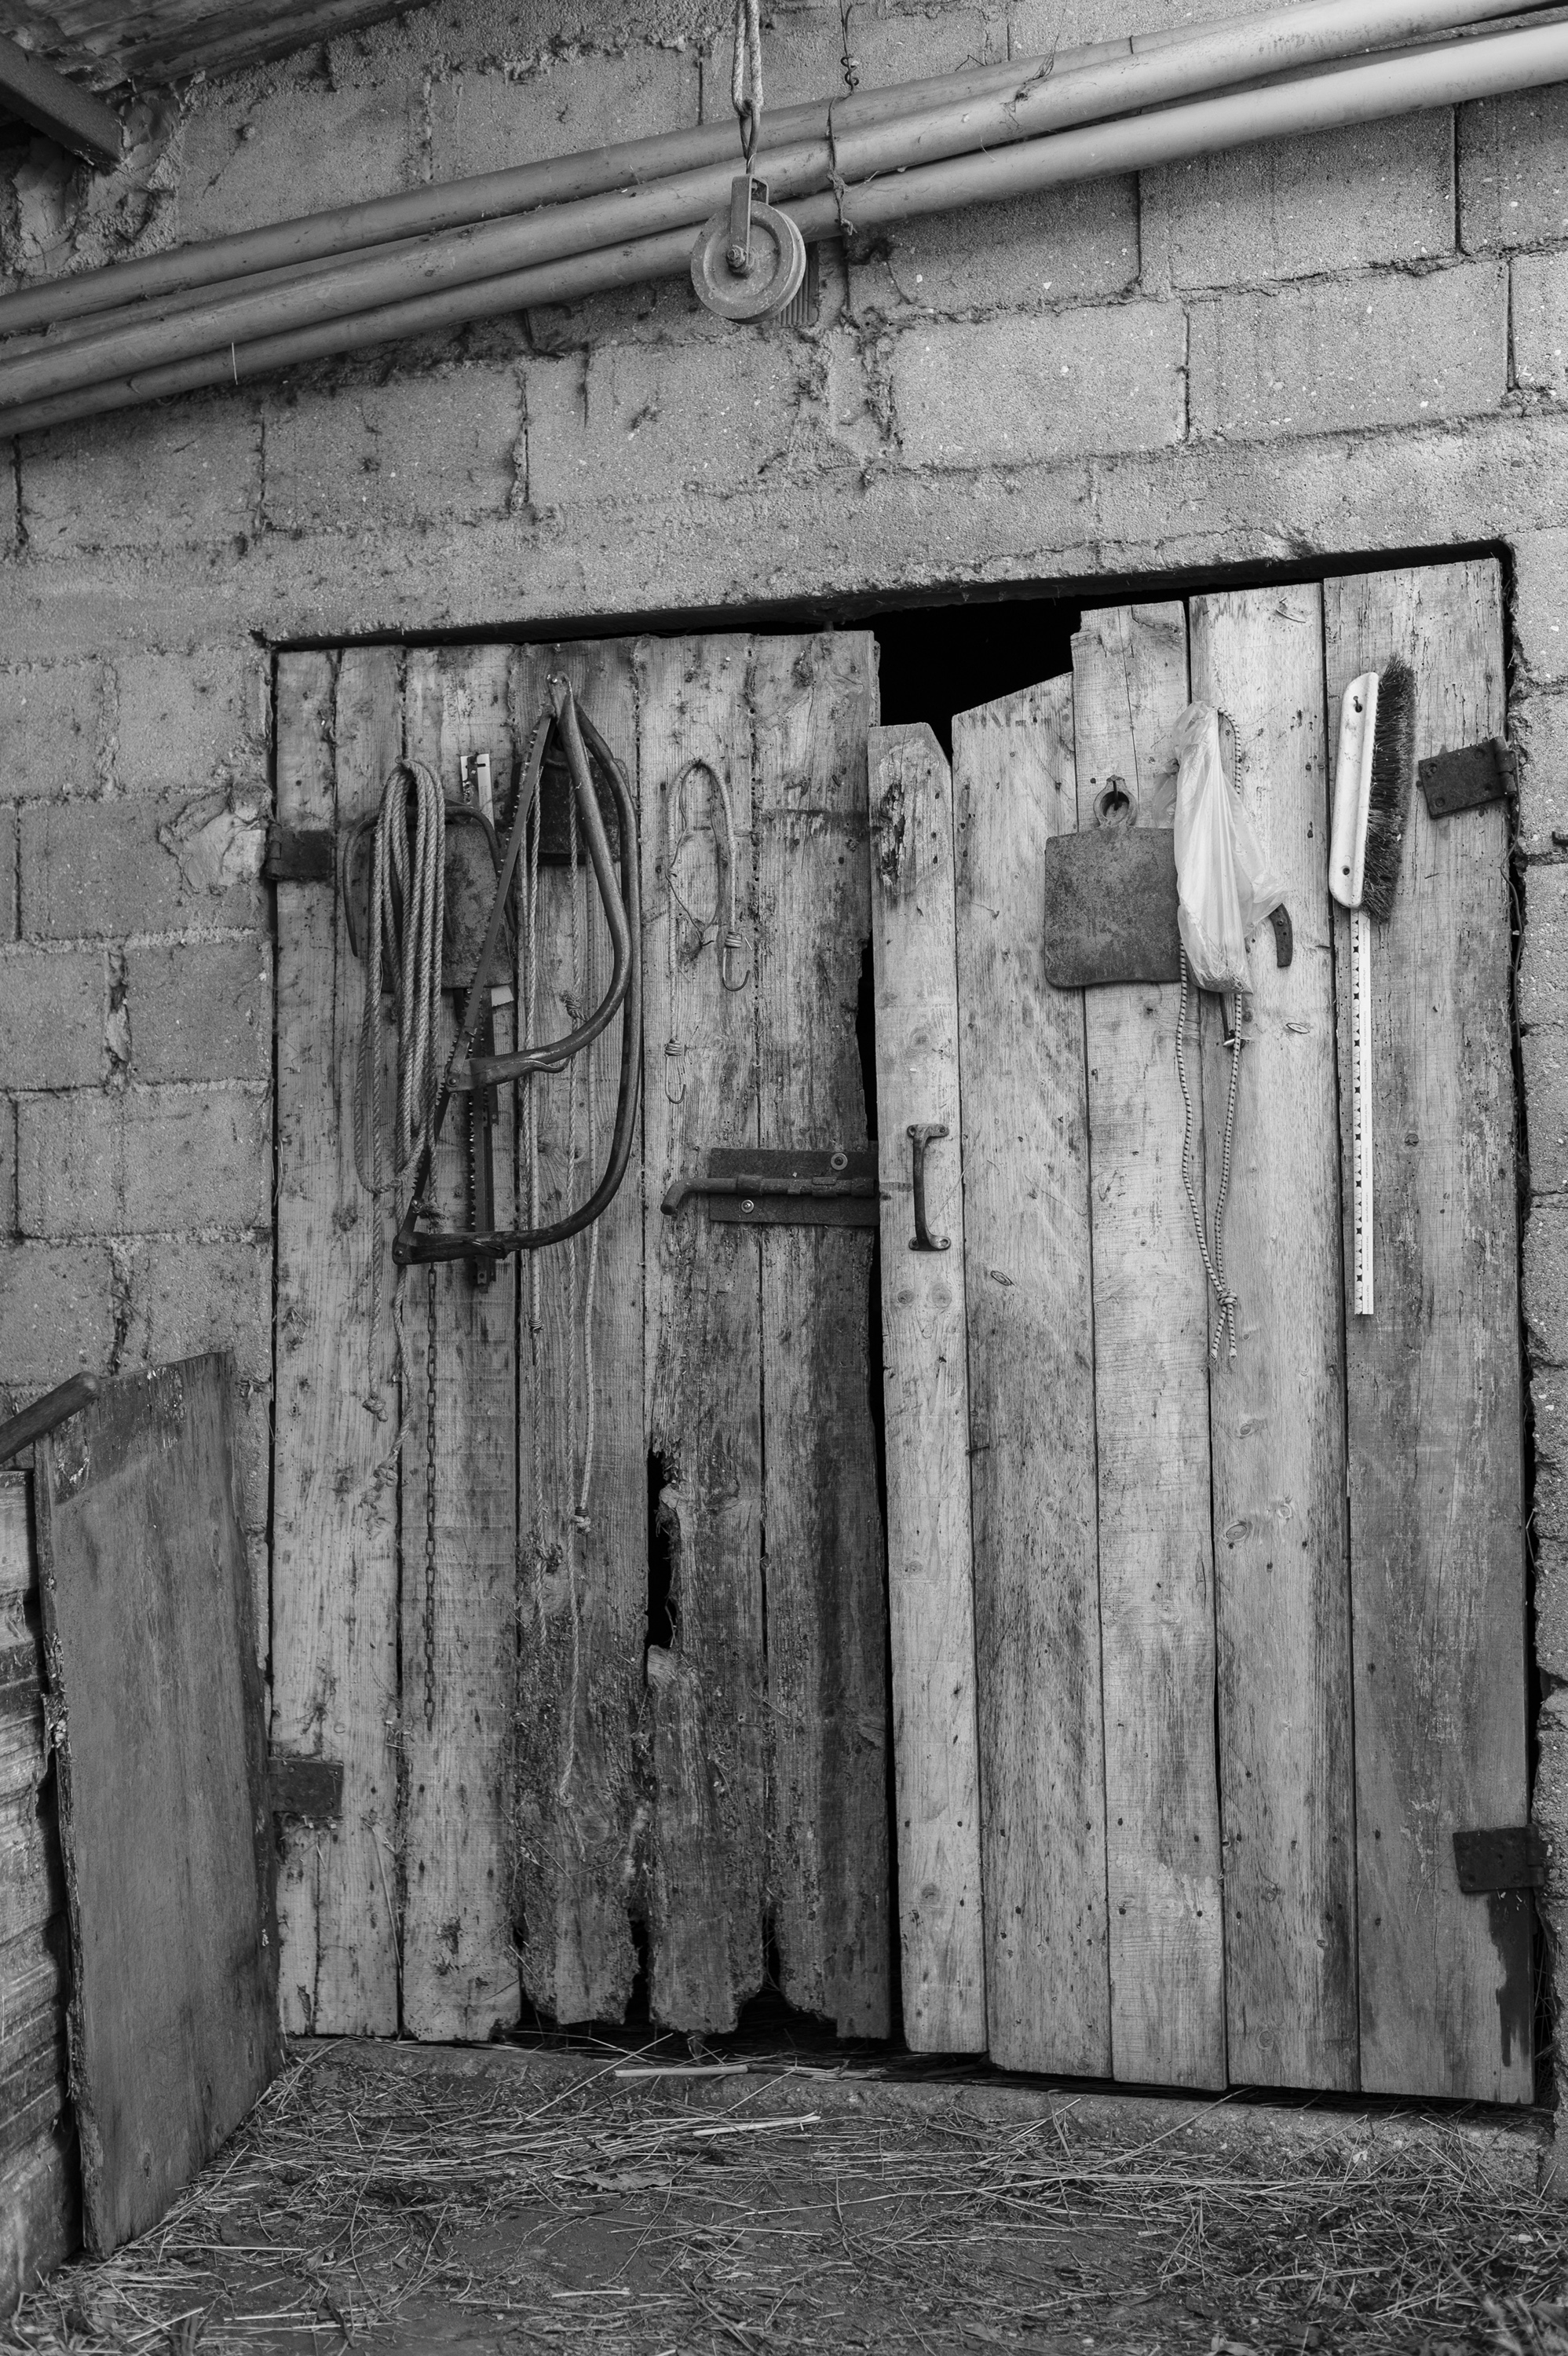 old barn gate with tools black and white still photograph